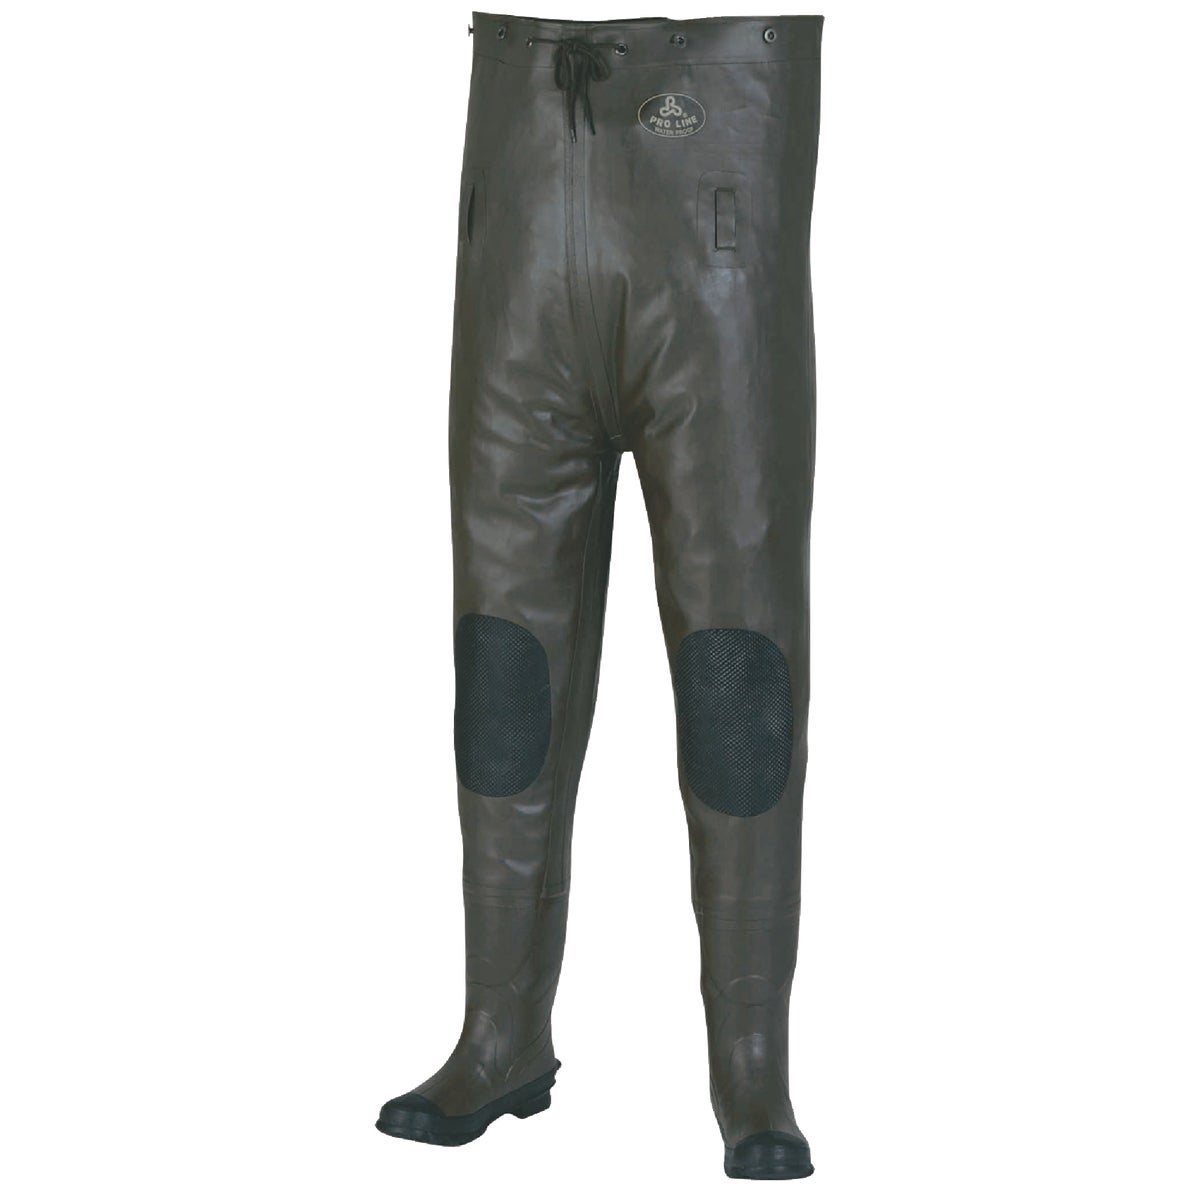 Pro Line Mfg Co SZ 12 CHEST WADER 2012-12